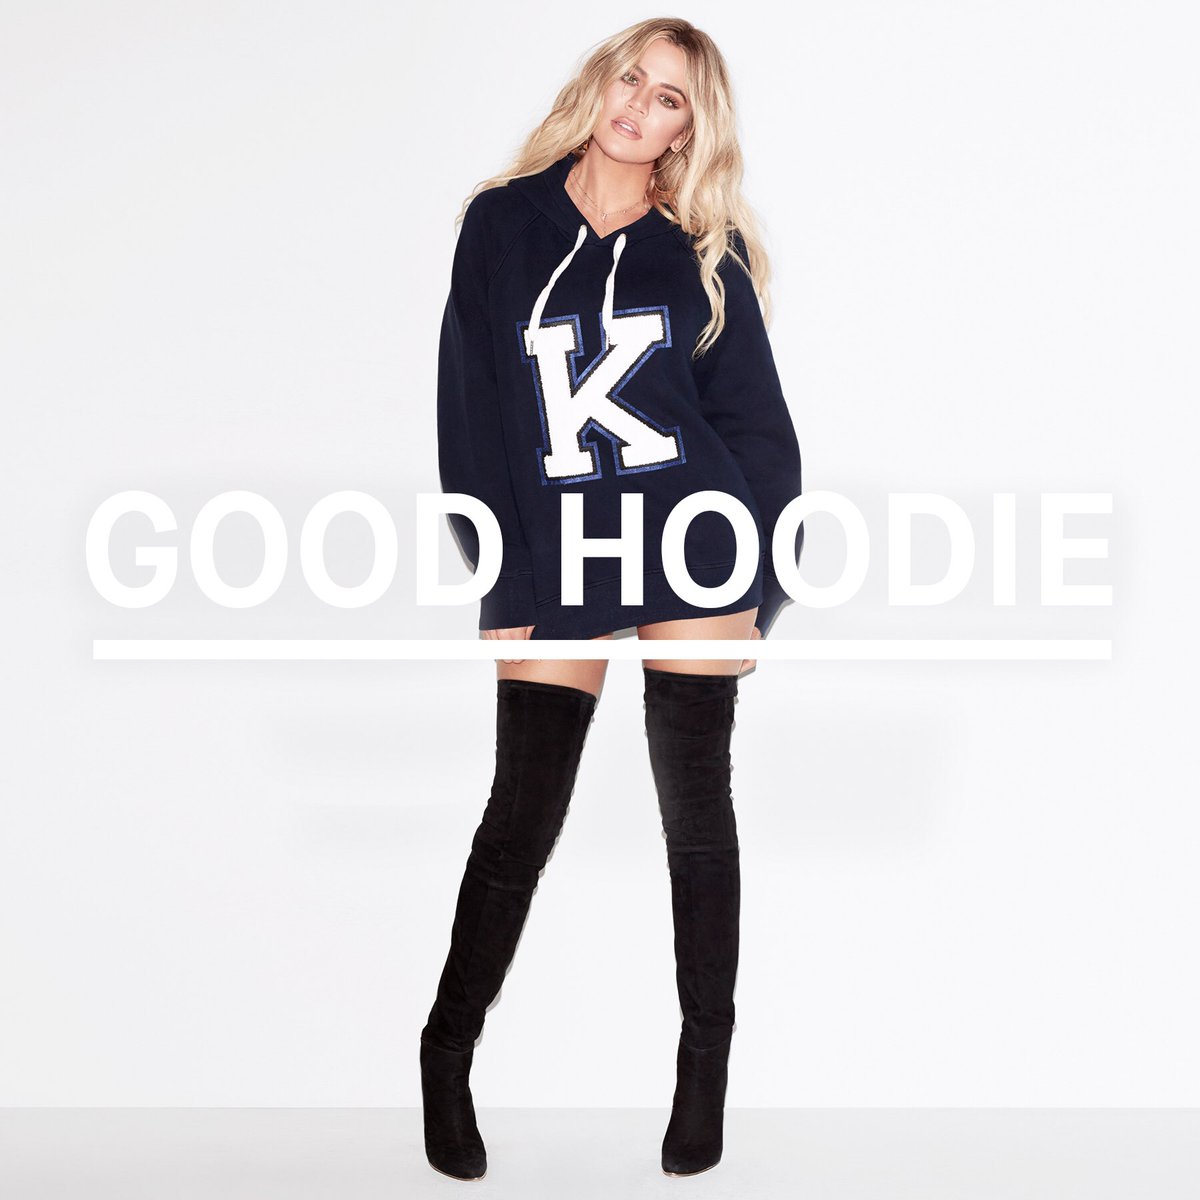 My brand new @goodamerican limited edition Letter Hoodie is available NOW, exclusively at https://t.co/sztXSyya4W! https://t.co/wMaDWantPk